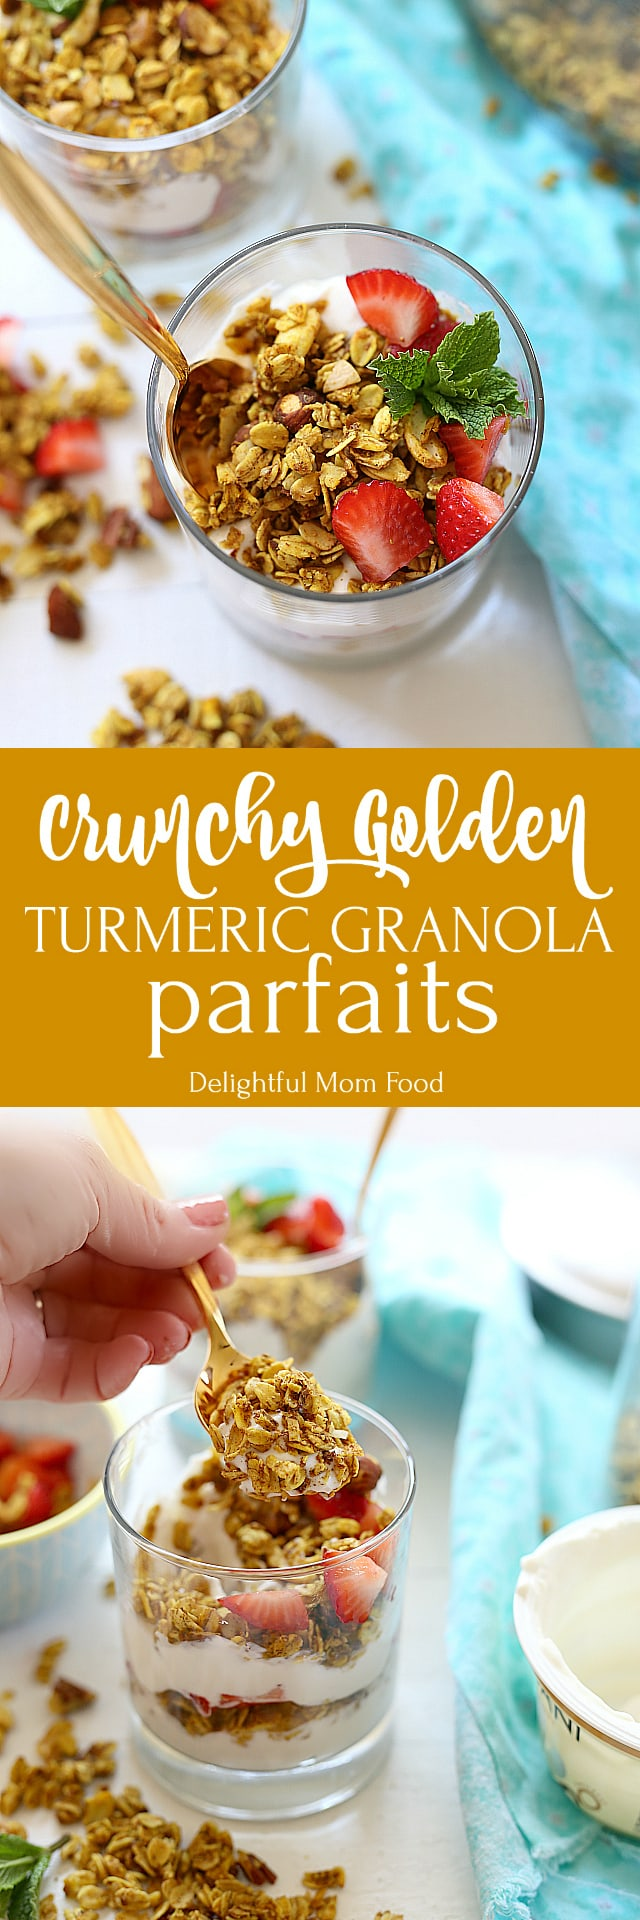 Crunchy turmeric granola parfait recipe that takes turmeric recipes to a whole new delicious level!I love eating turmeric any way I can get it and this turmeric granola is one way my kids will eat it too!